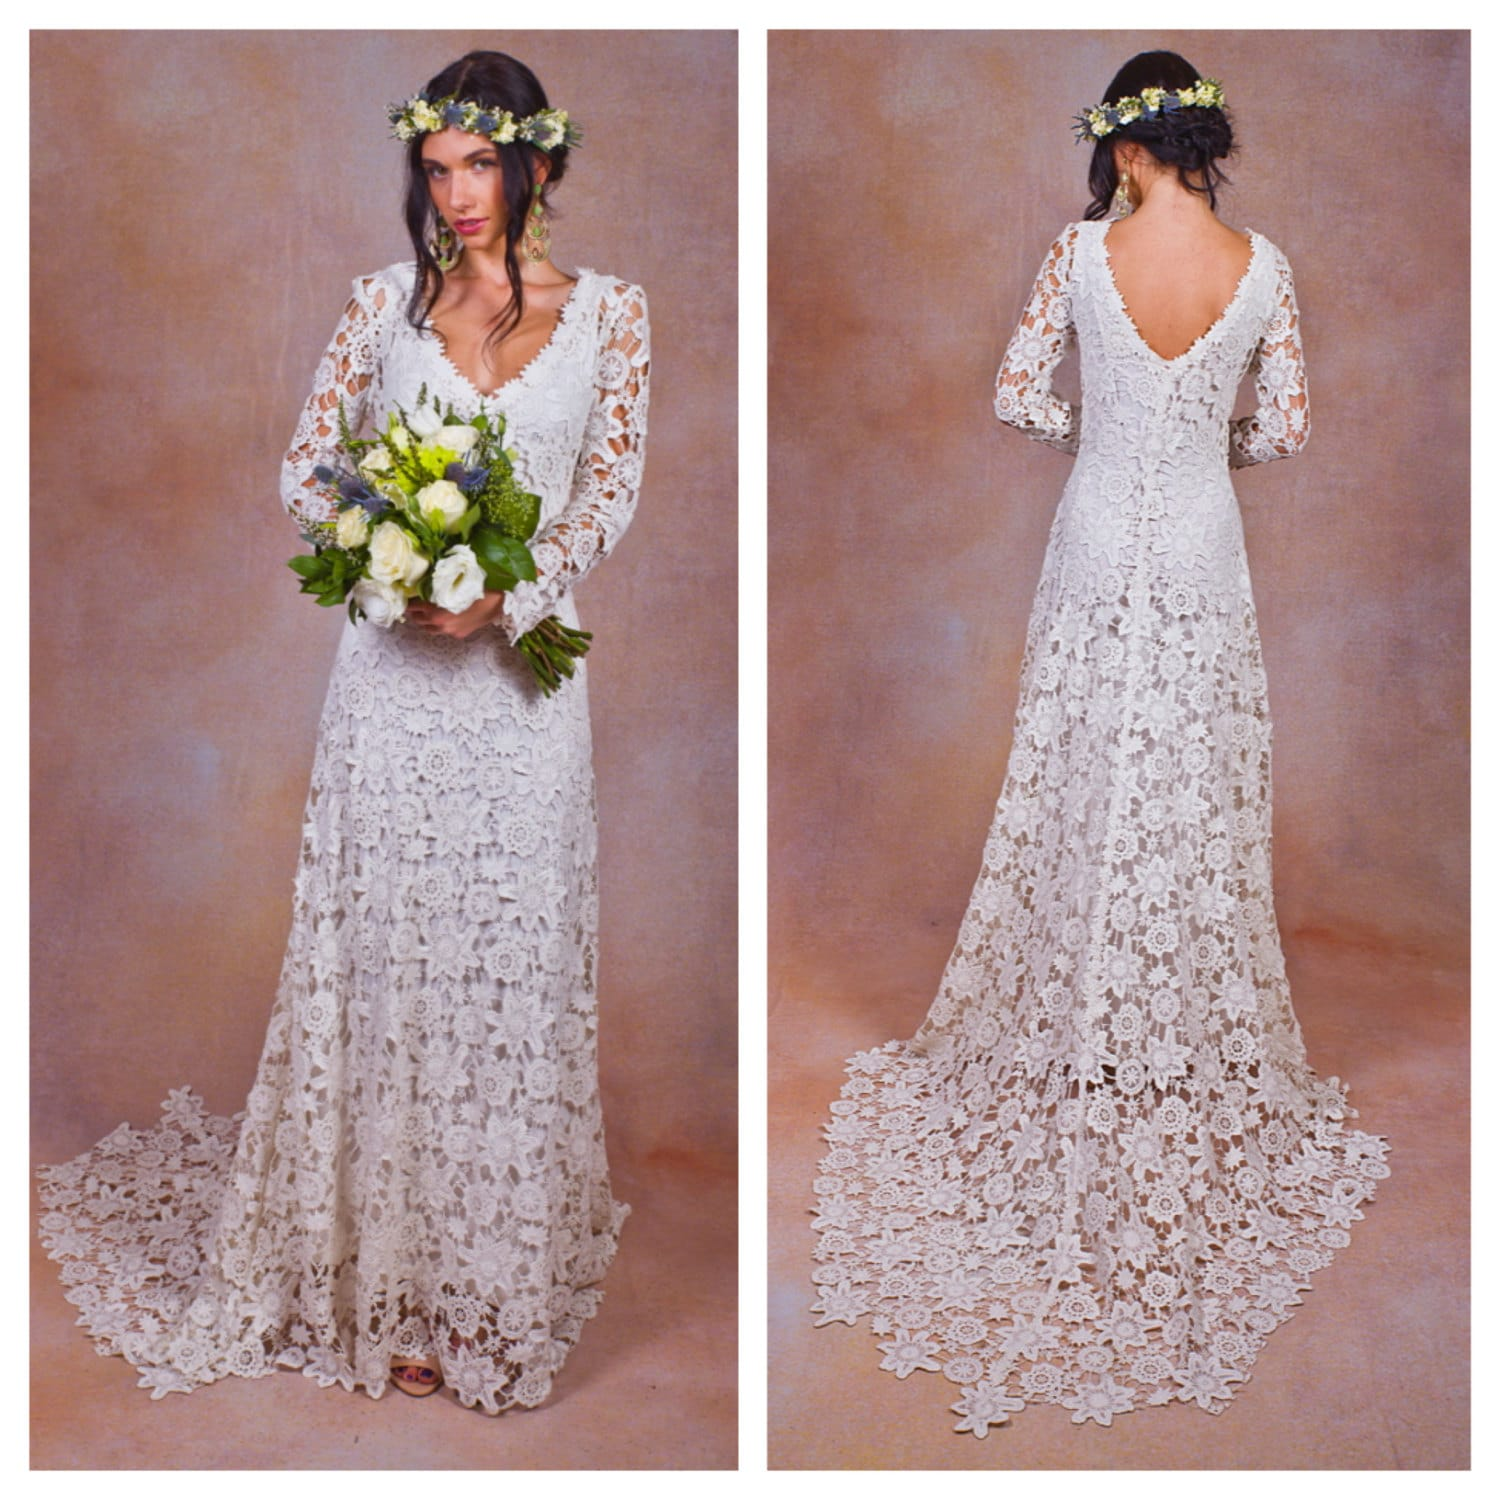 Rustic boho wedding dress simple crochet lace bohemian for Boho country wedding dress